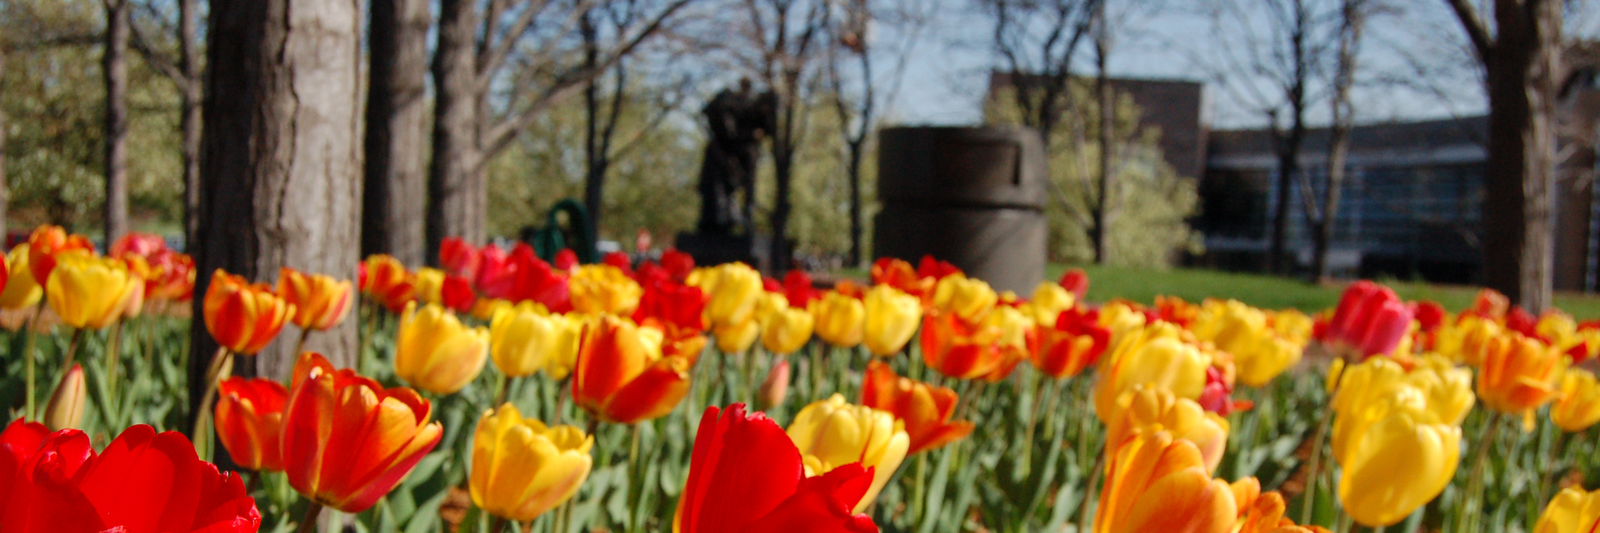 tulips-at-city-hall.jpg